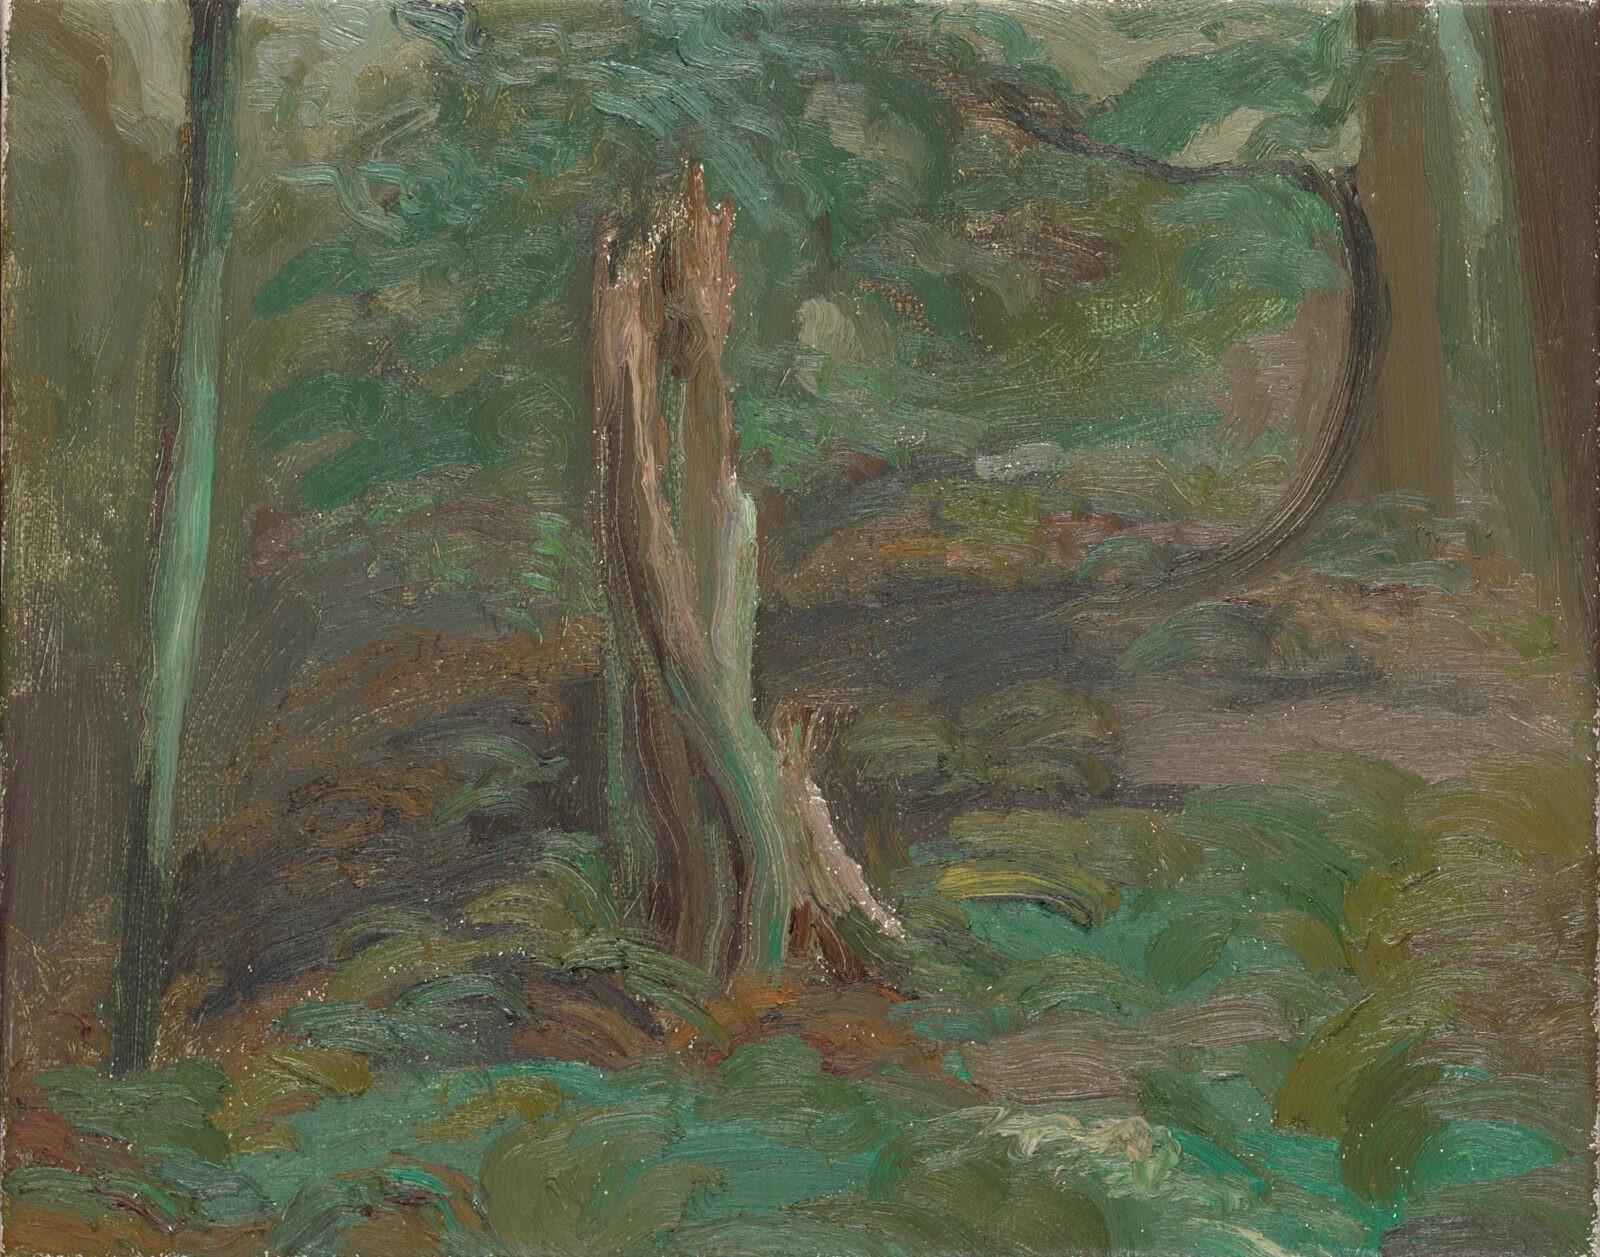 Liza Visagie - Forest Canopy. Oil on Linen 8 x 10 inches